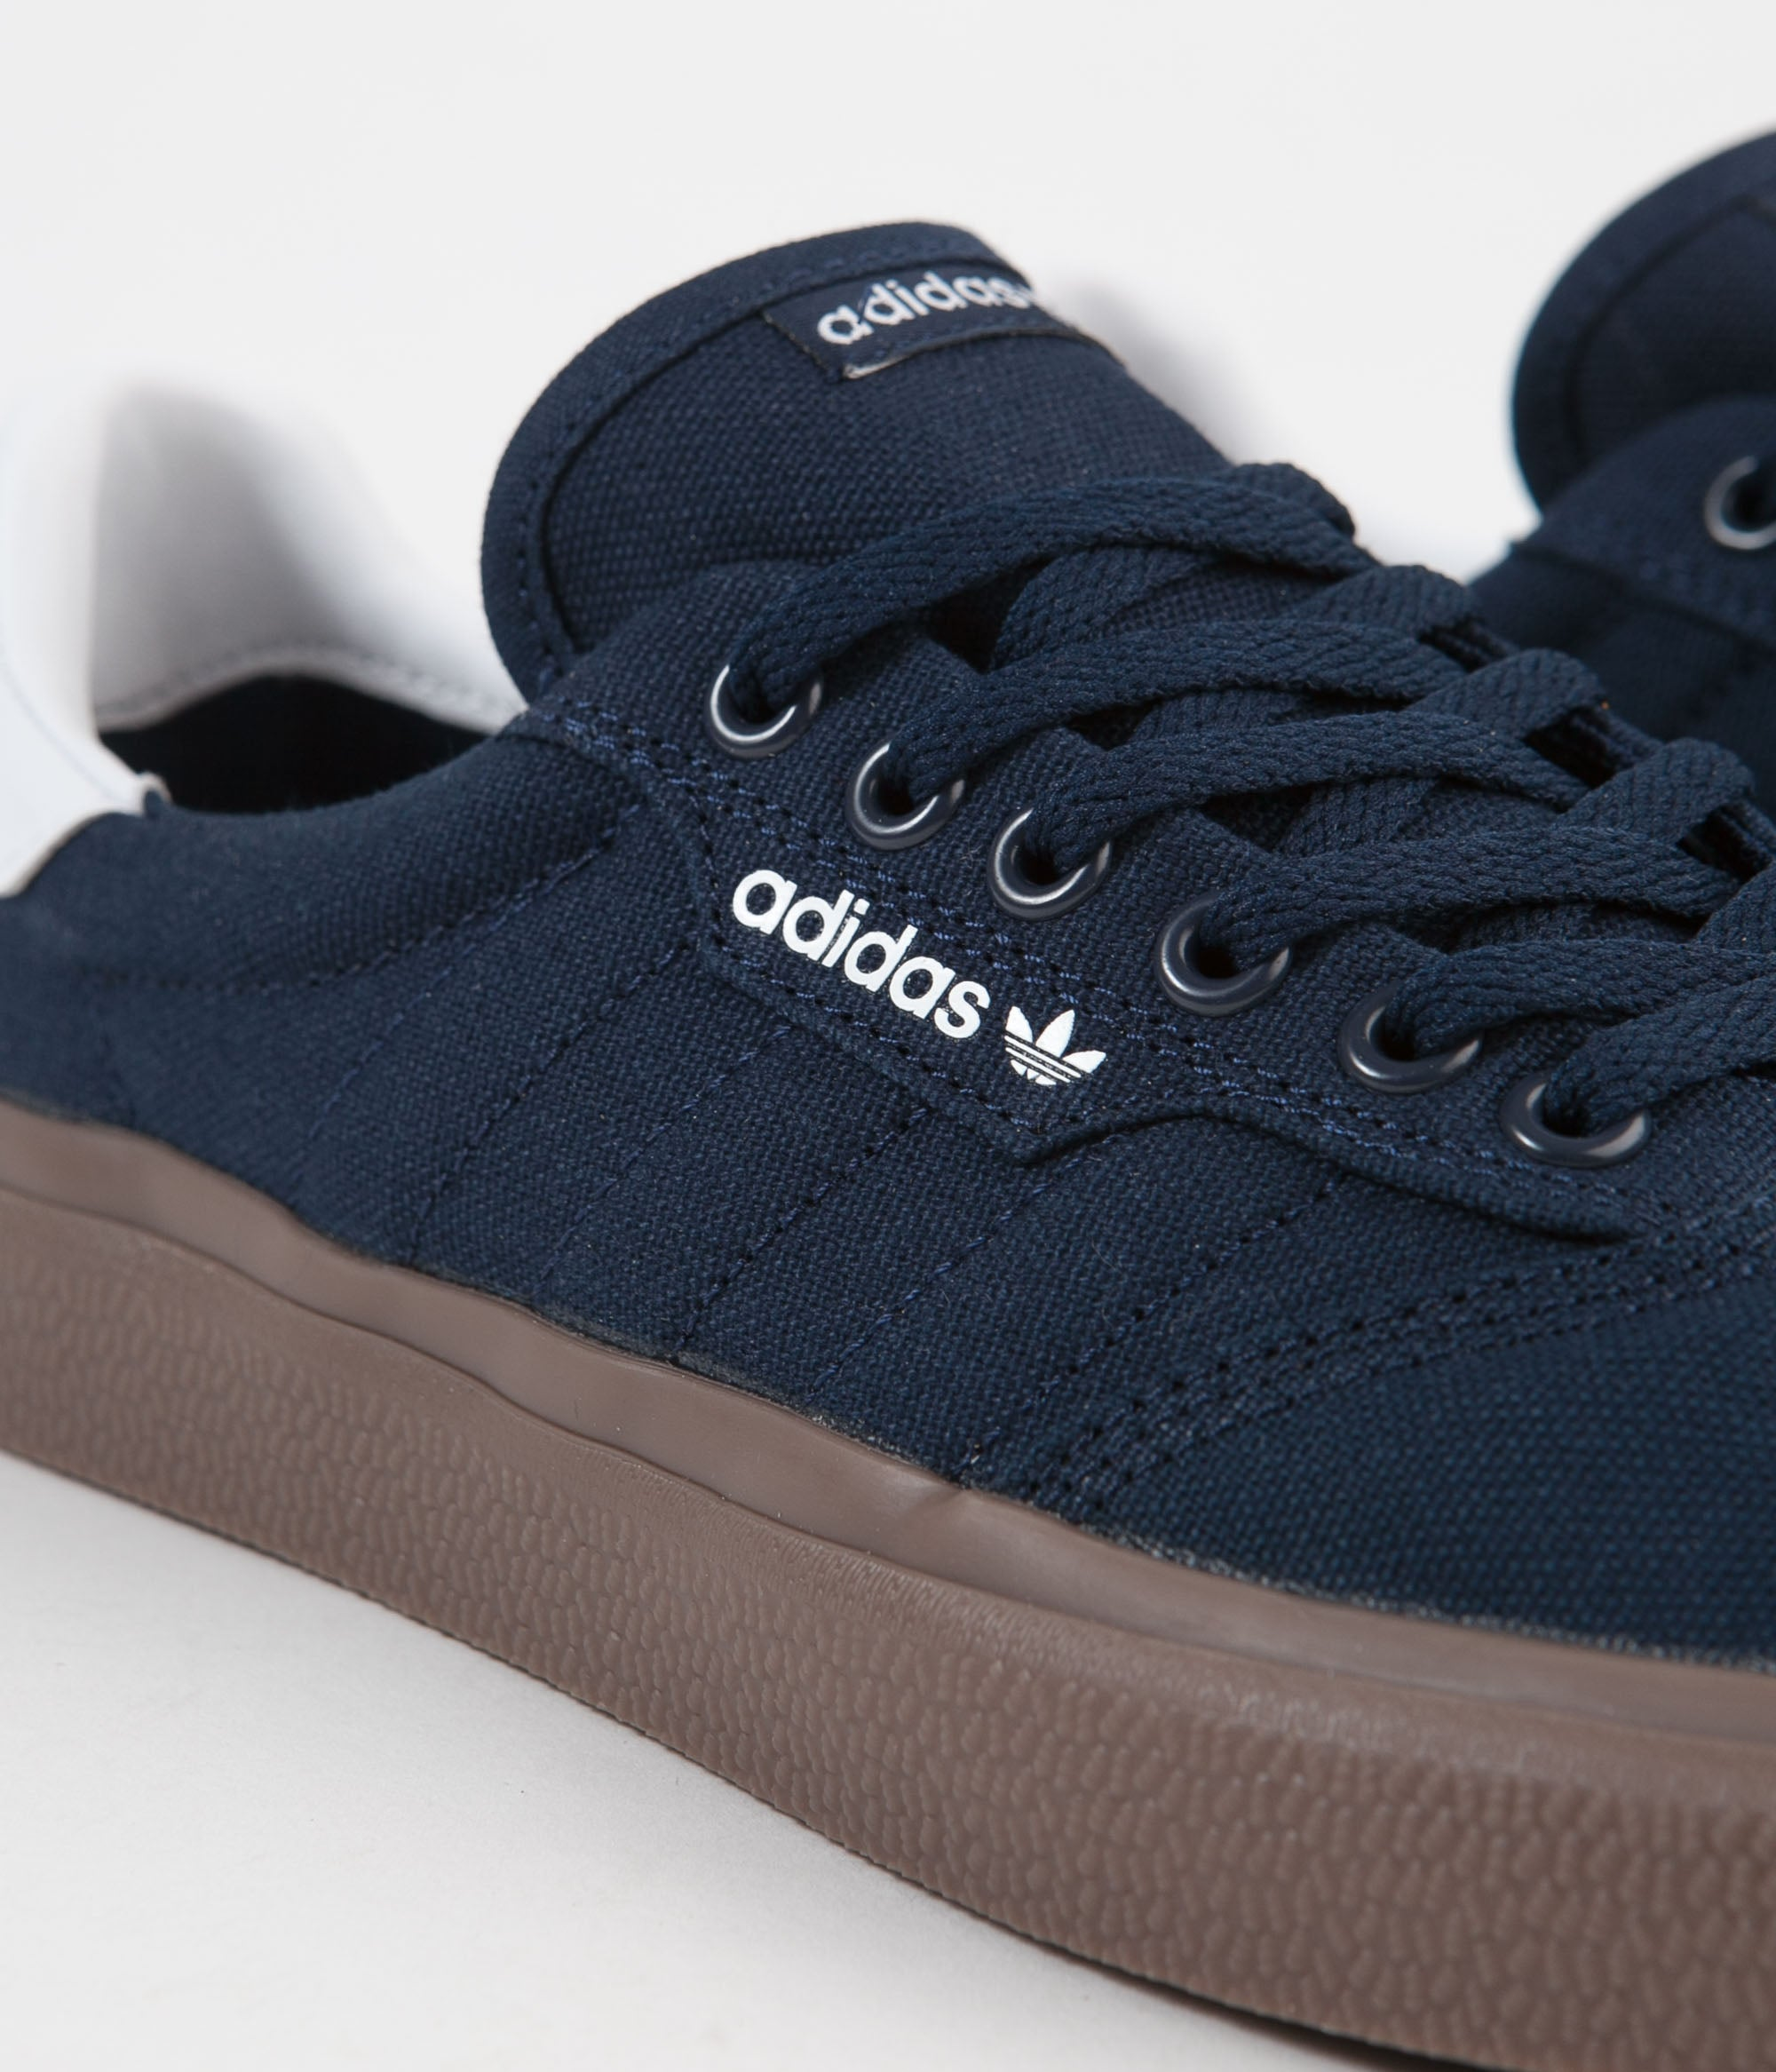 Mansedumbre historia Robusto  Adidas 3MC Shoes - Collegiate Navy / White / Gum | Flatspot